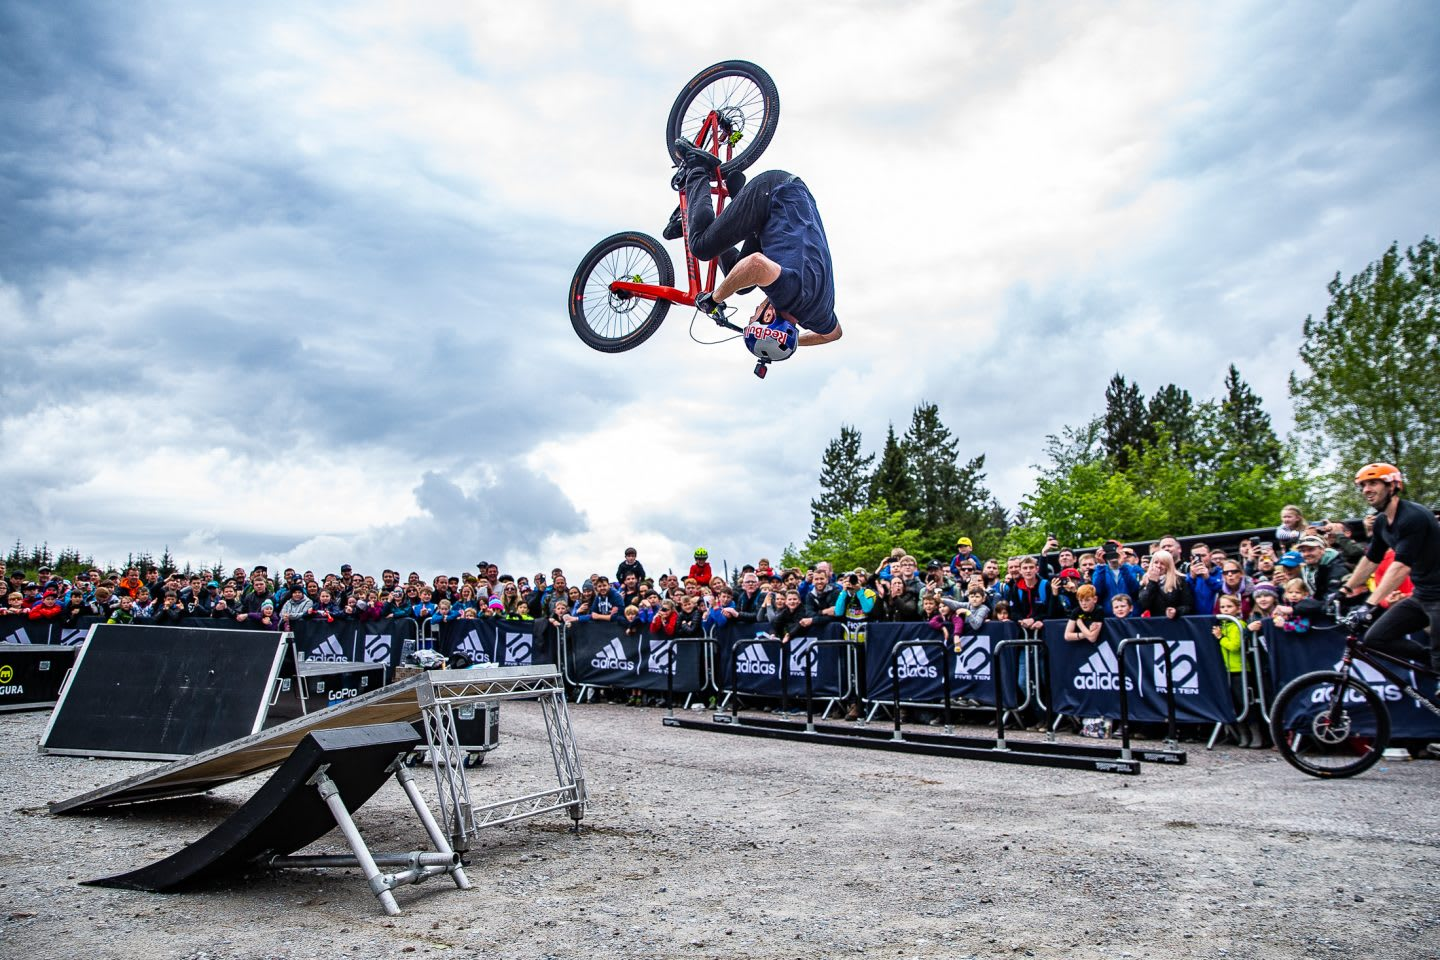 Mountainbike pro Danny MacAsill is doing a flip in front of a big crowd